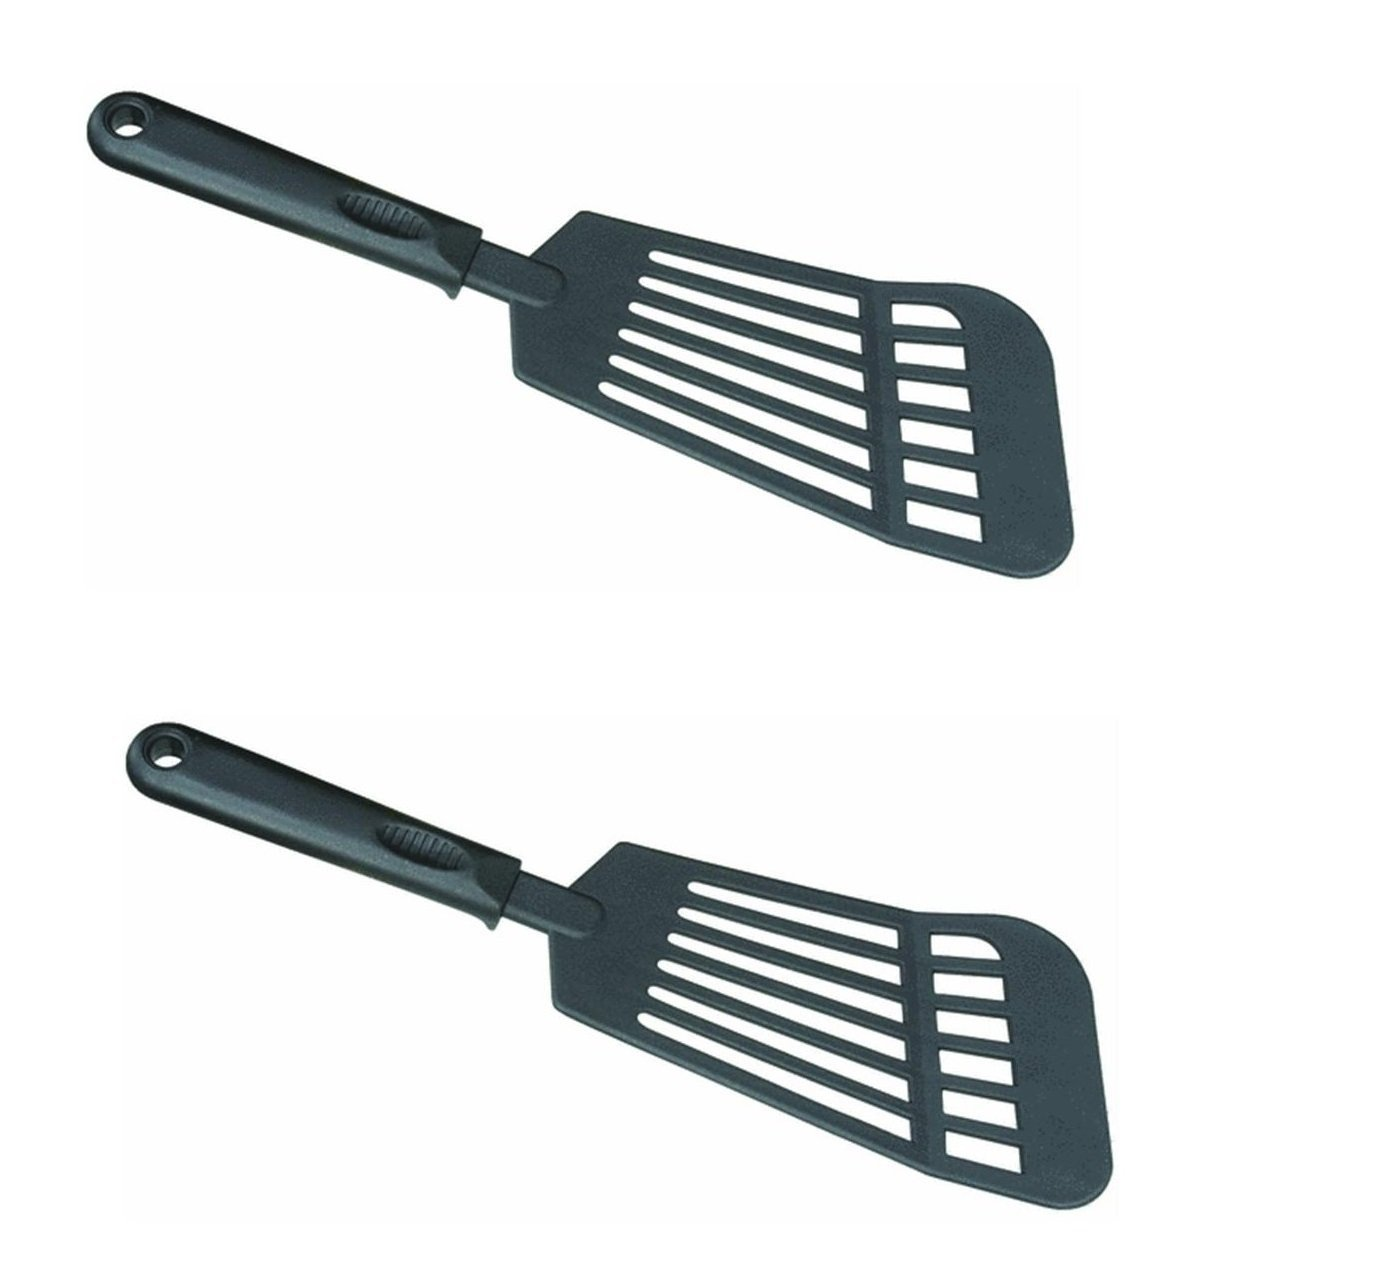 0907 Jumbo Slotted Turner, 2 Spatulas of High heat resistant to 410f 210c By Norpro by